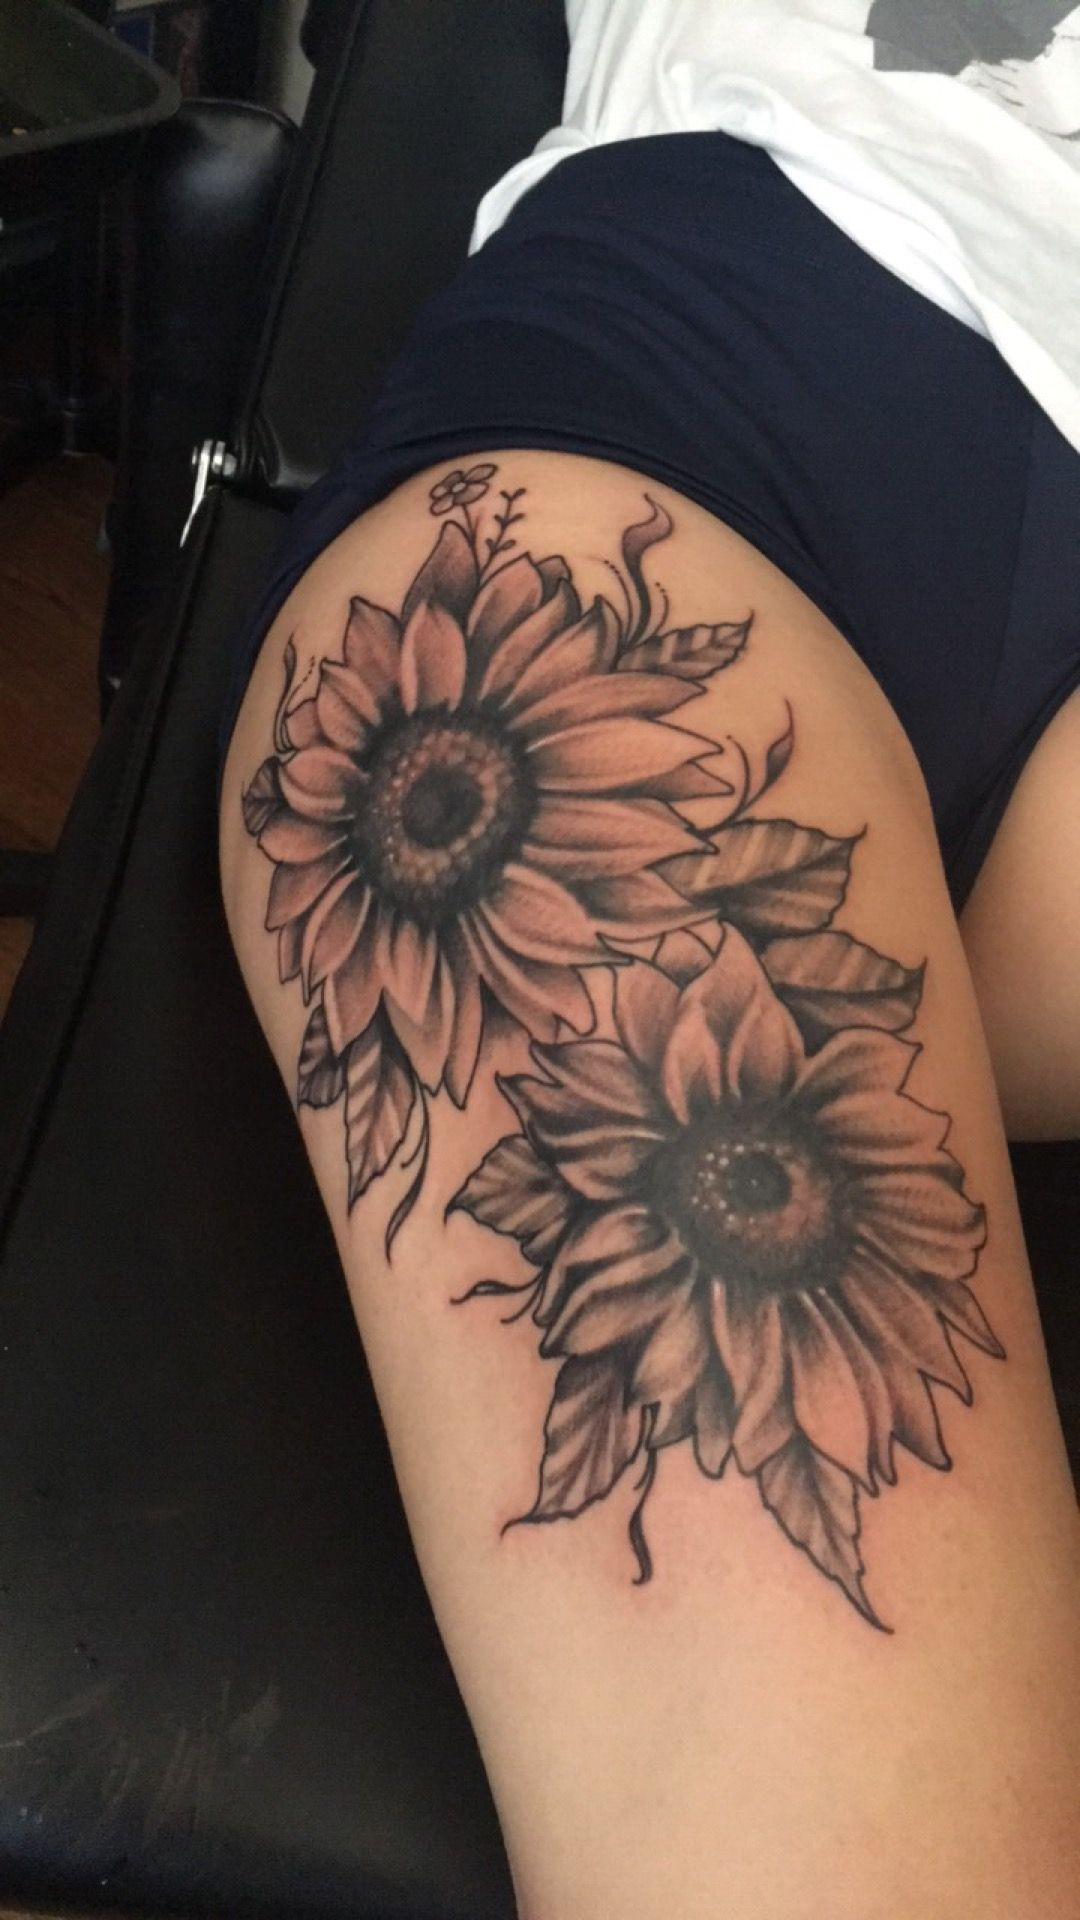 My Own Creation Of Sunflowers Tatts Tattoos Sunflower Ideas And Designs